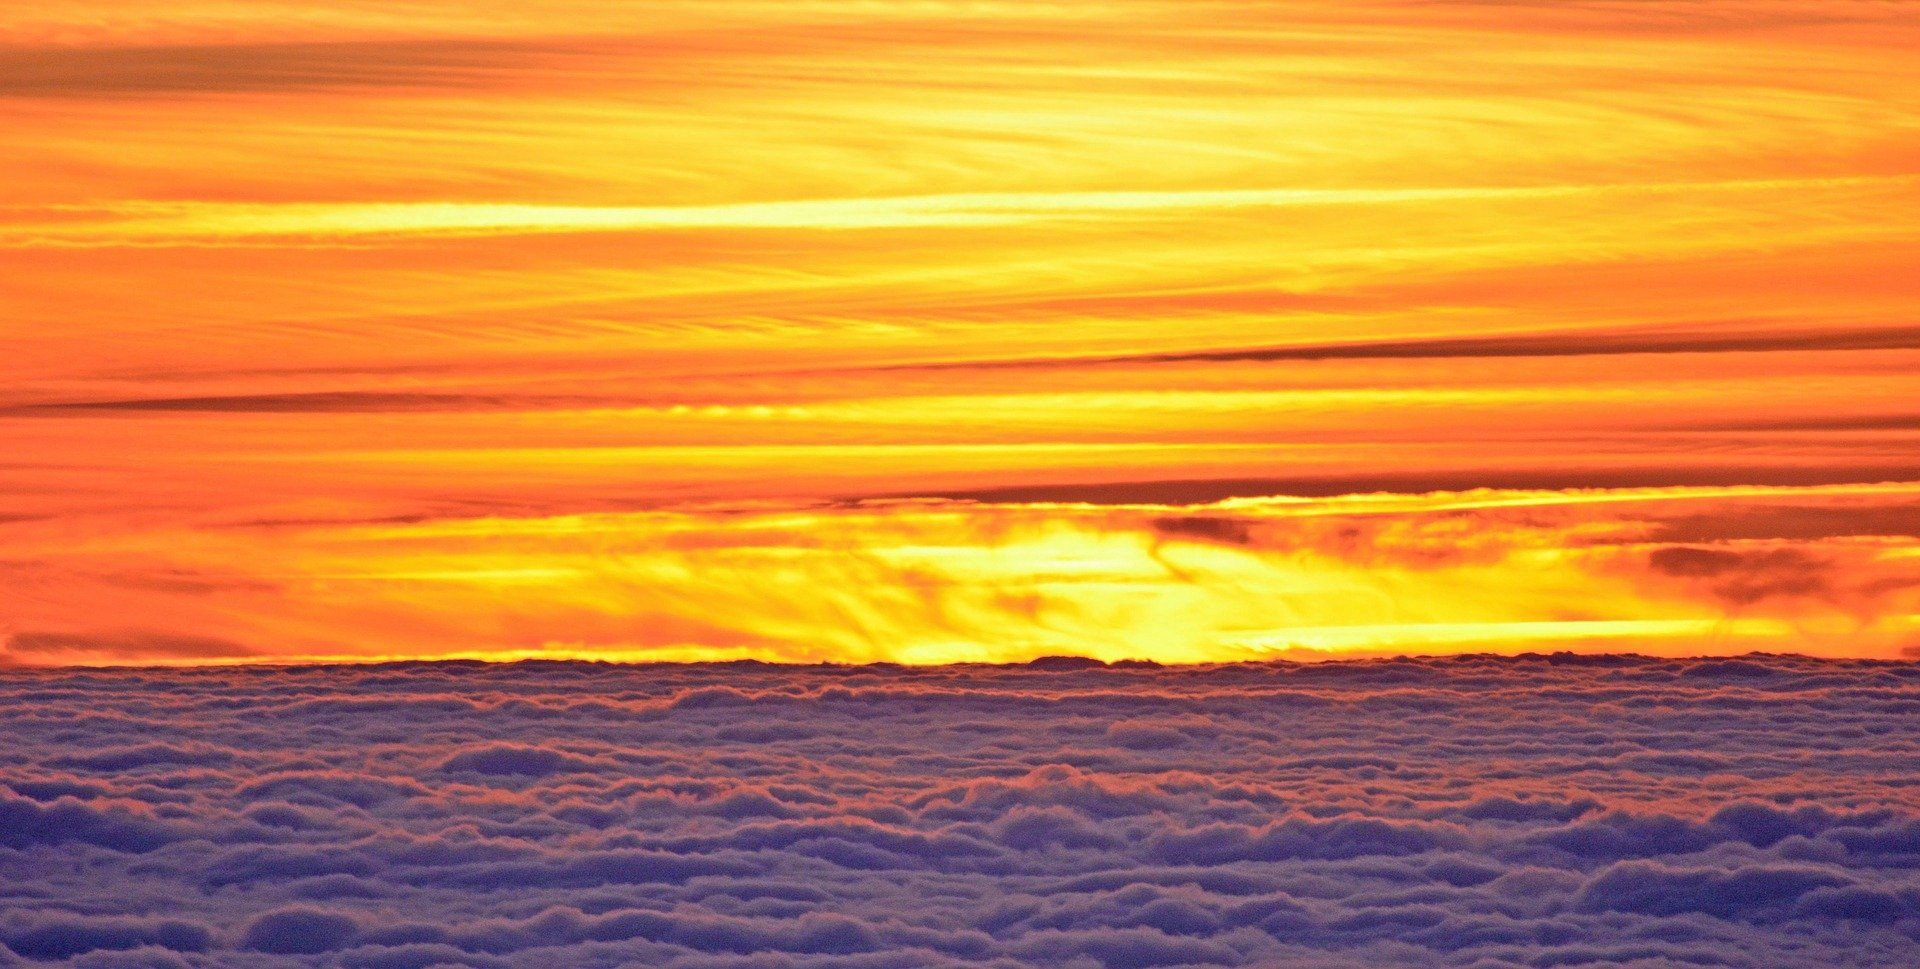 Sunset over the clouds, with many yellow-orange-red like color types.